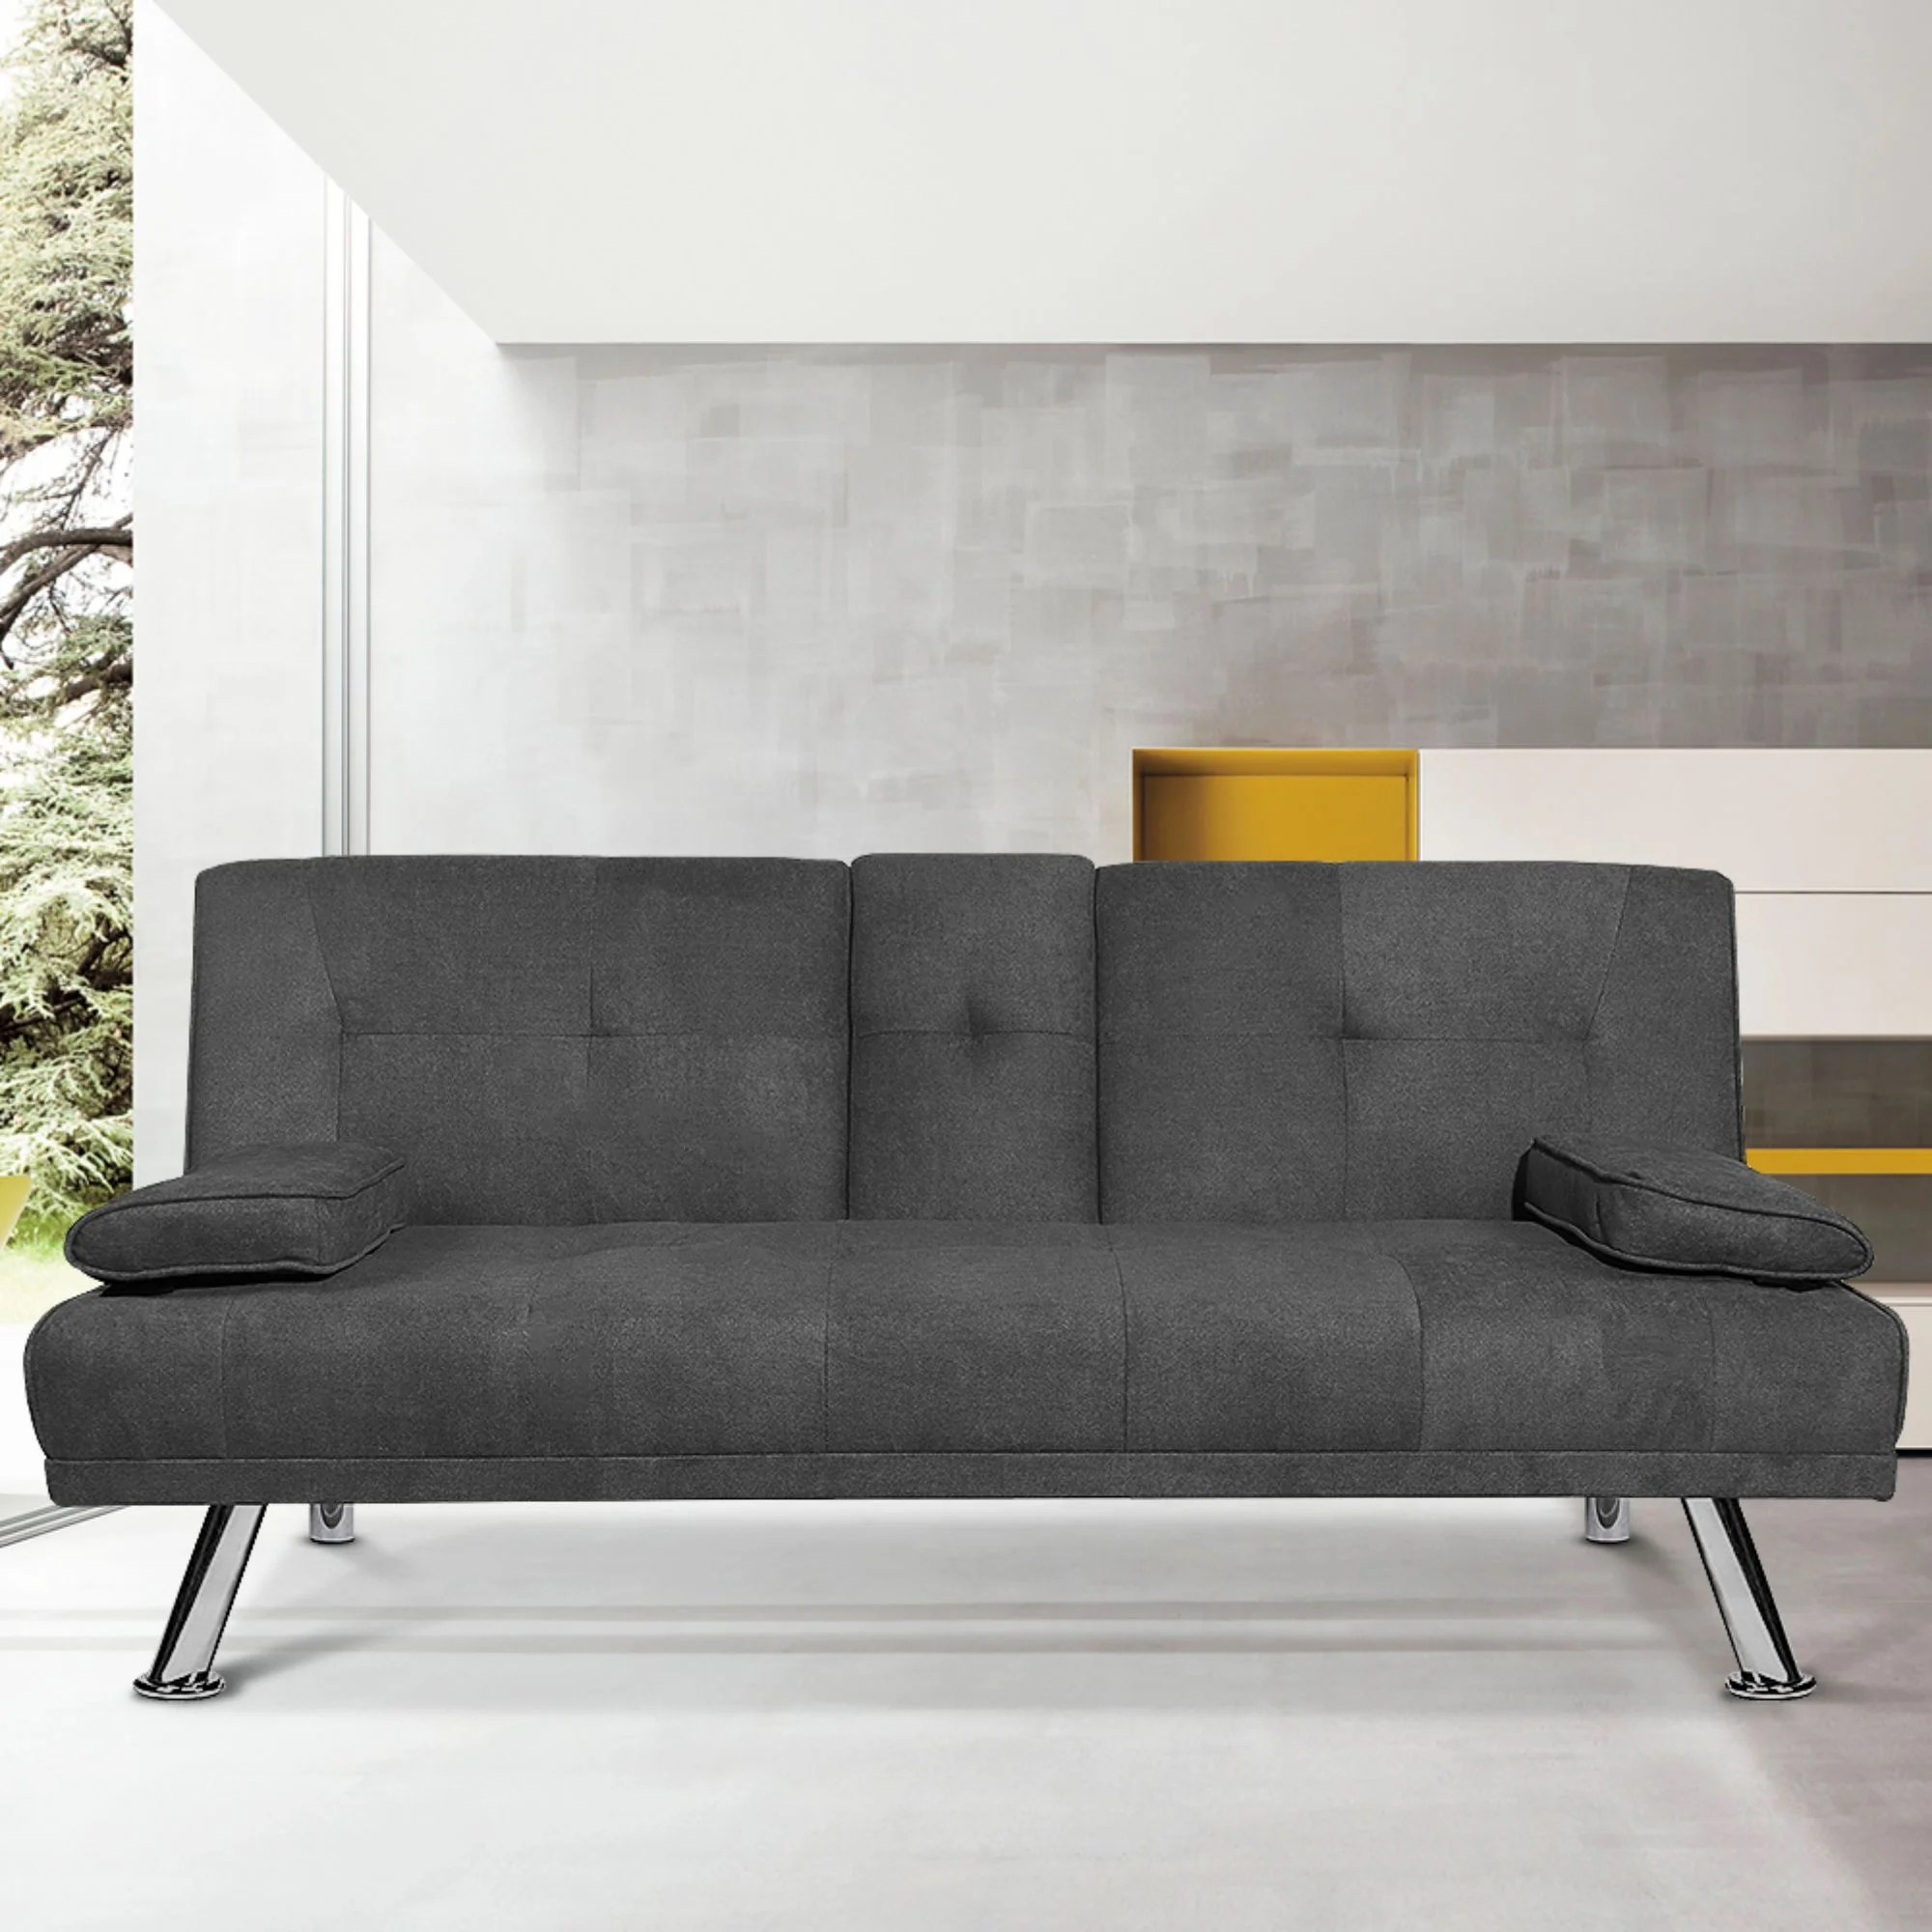 modern sofa bed convertible sectional sofa bed fold up and down recliner couch with cup holders armrest and metal legs sofa bed for living room